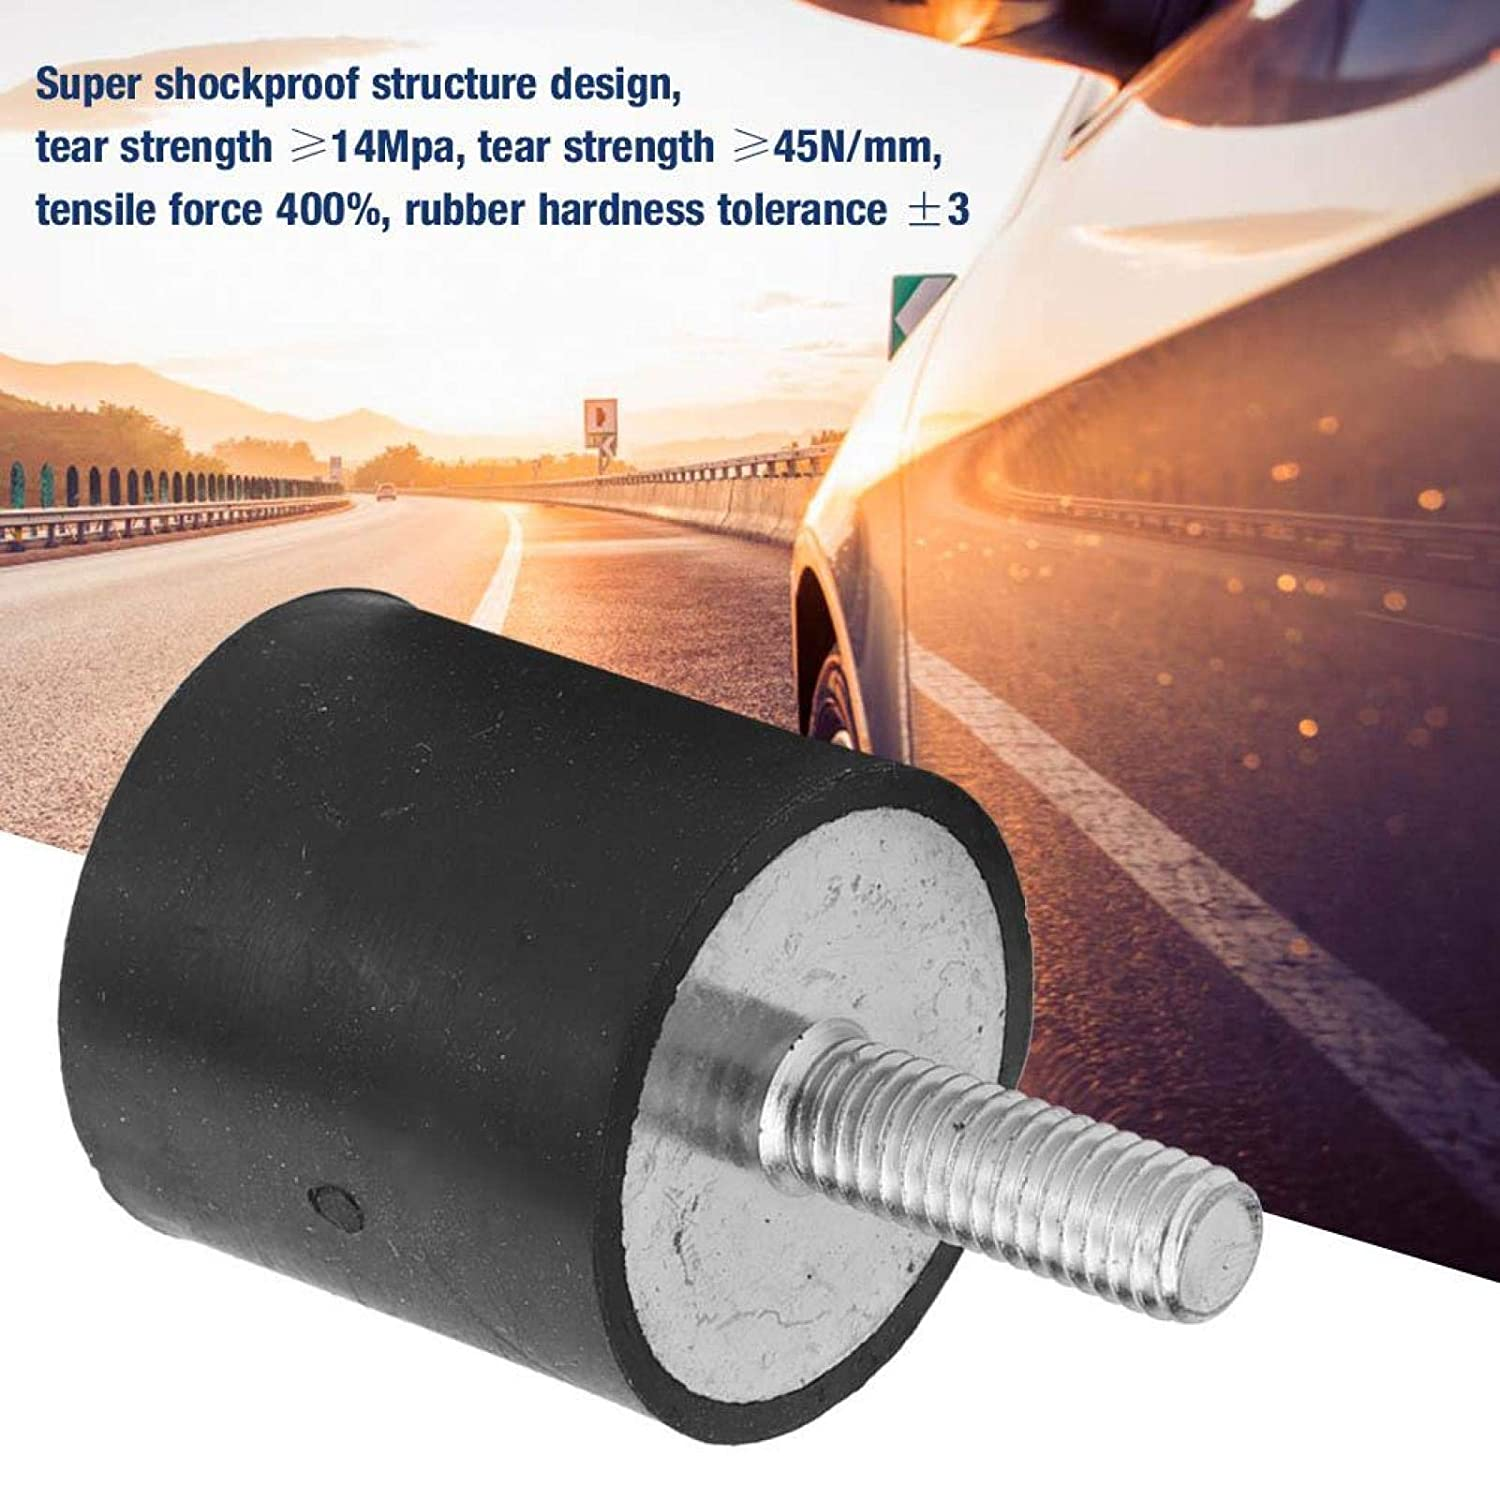 Romantic Valentines Day Rubber Bobbin Mount Non-Toxic Anti-Vibration Isolator Fitness Equipment Automotive Industry for Shockproof Products Heavy Machinery VE2525 M618